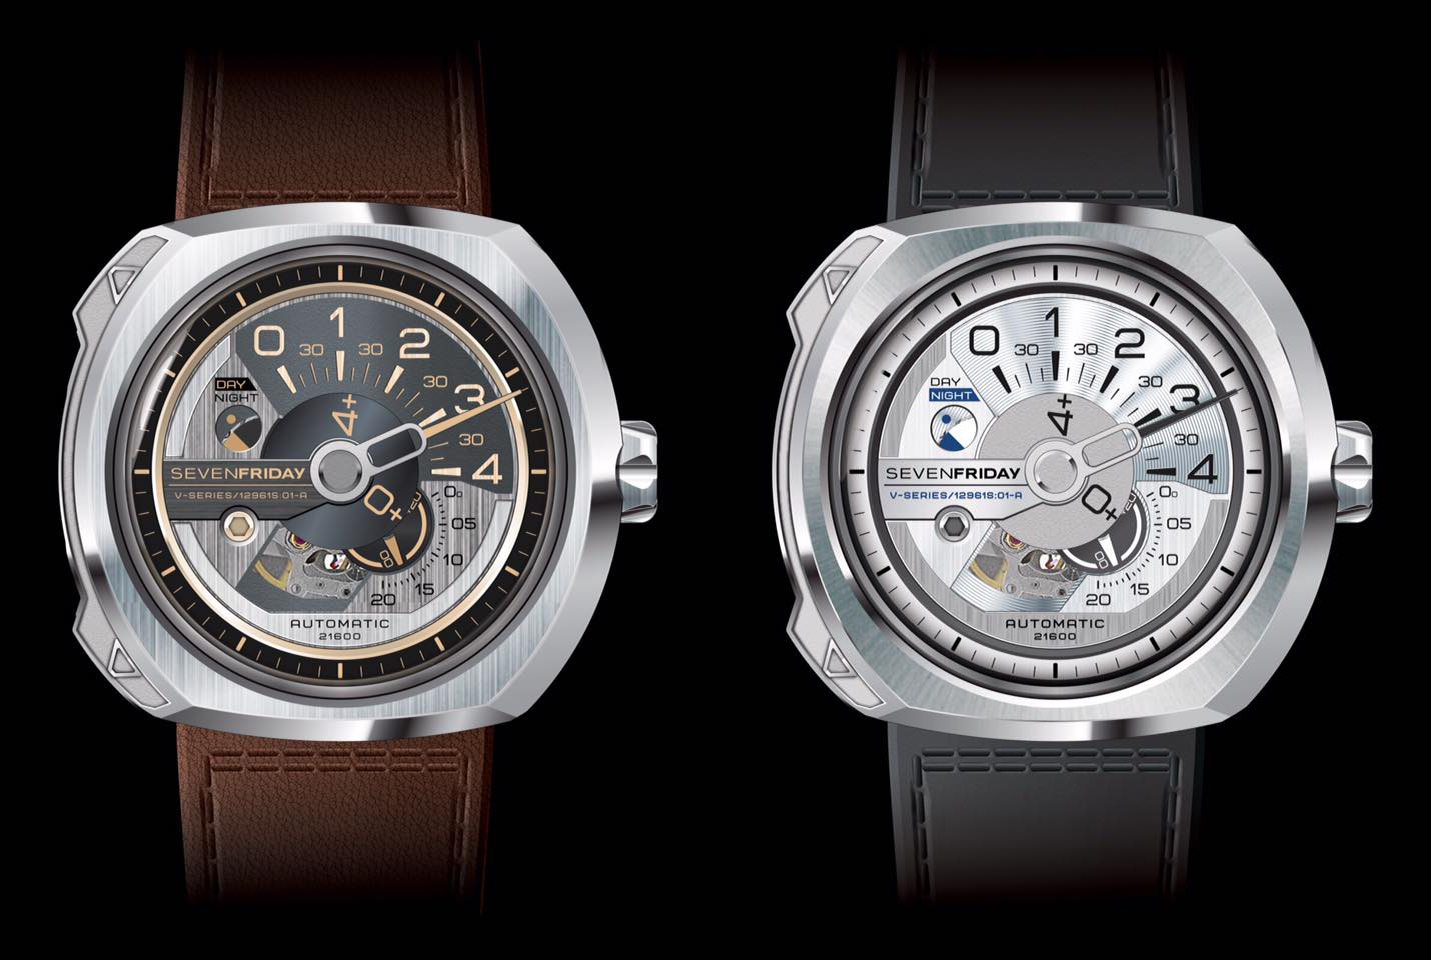 basel breguet swiss luxury en industrial hp since watches baselworld